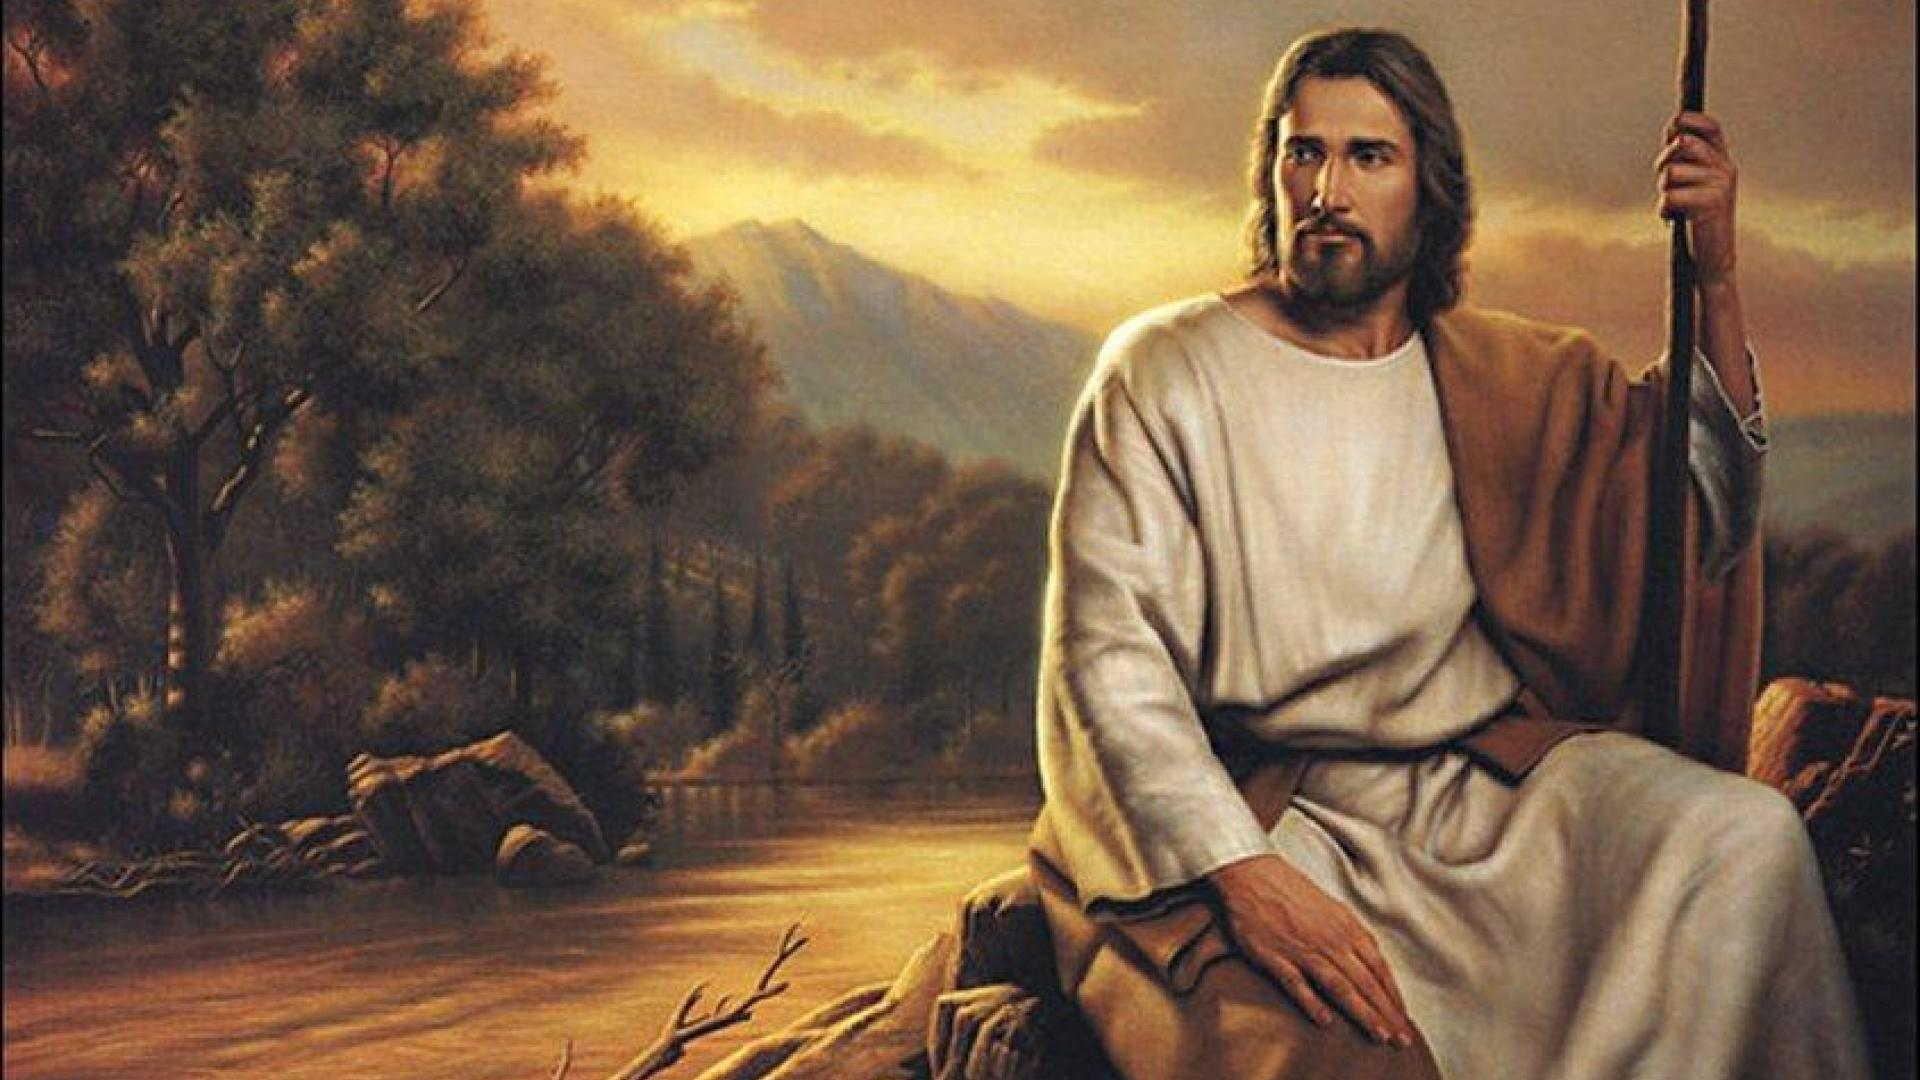 Christ Wallpapers